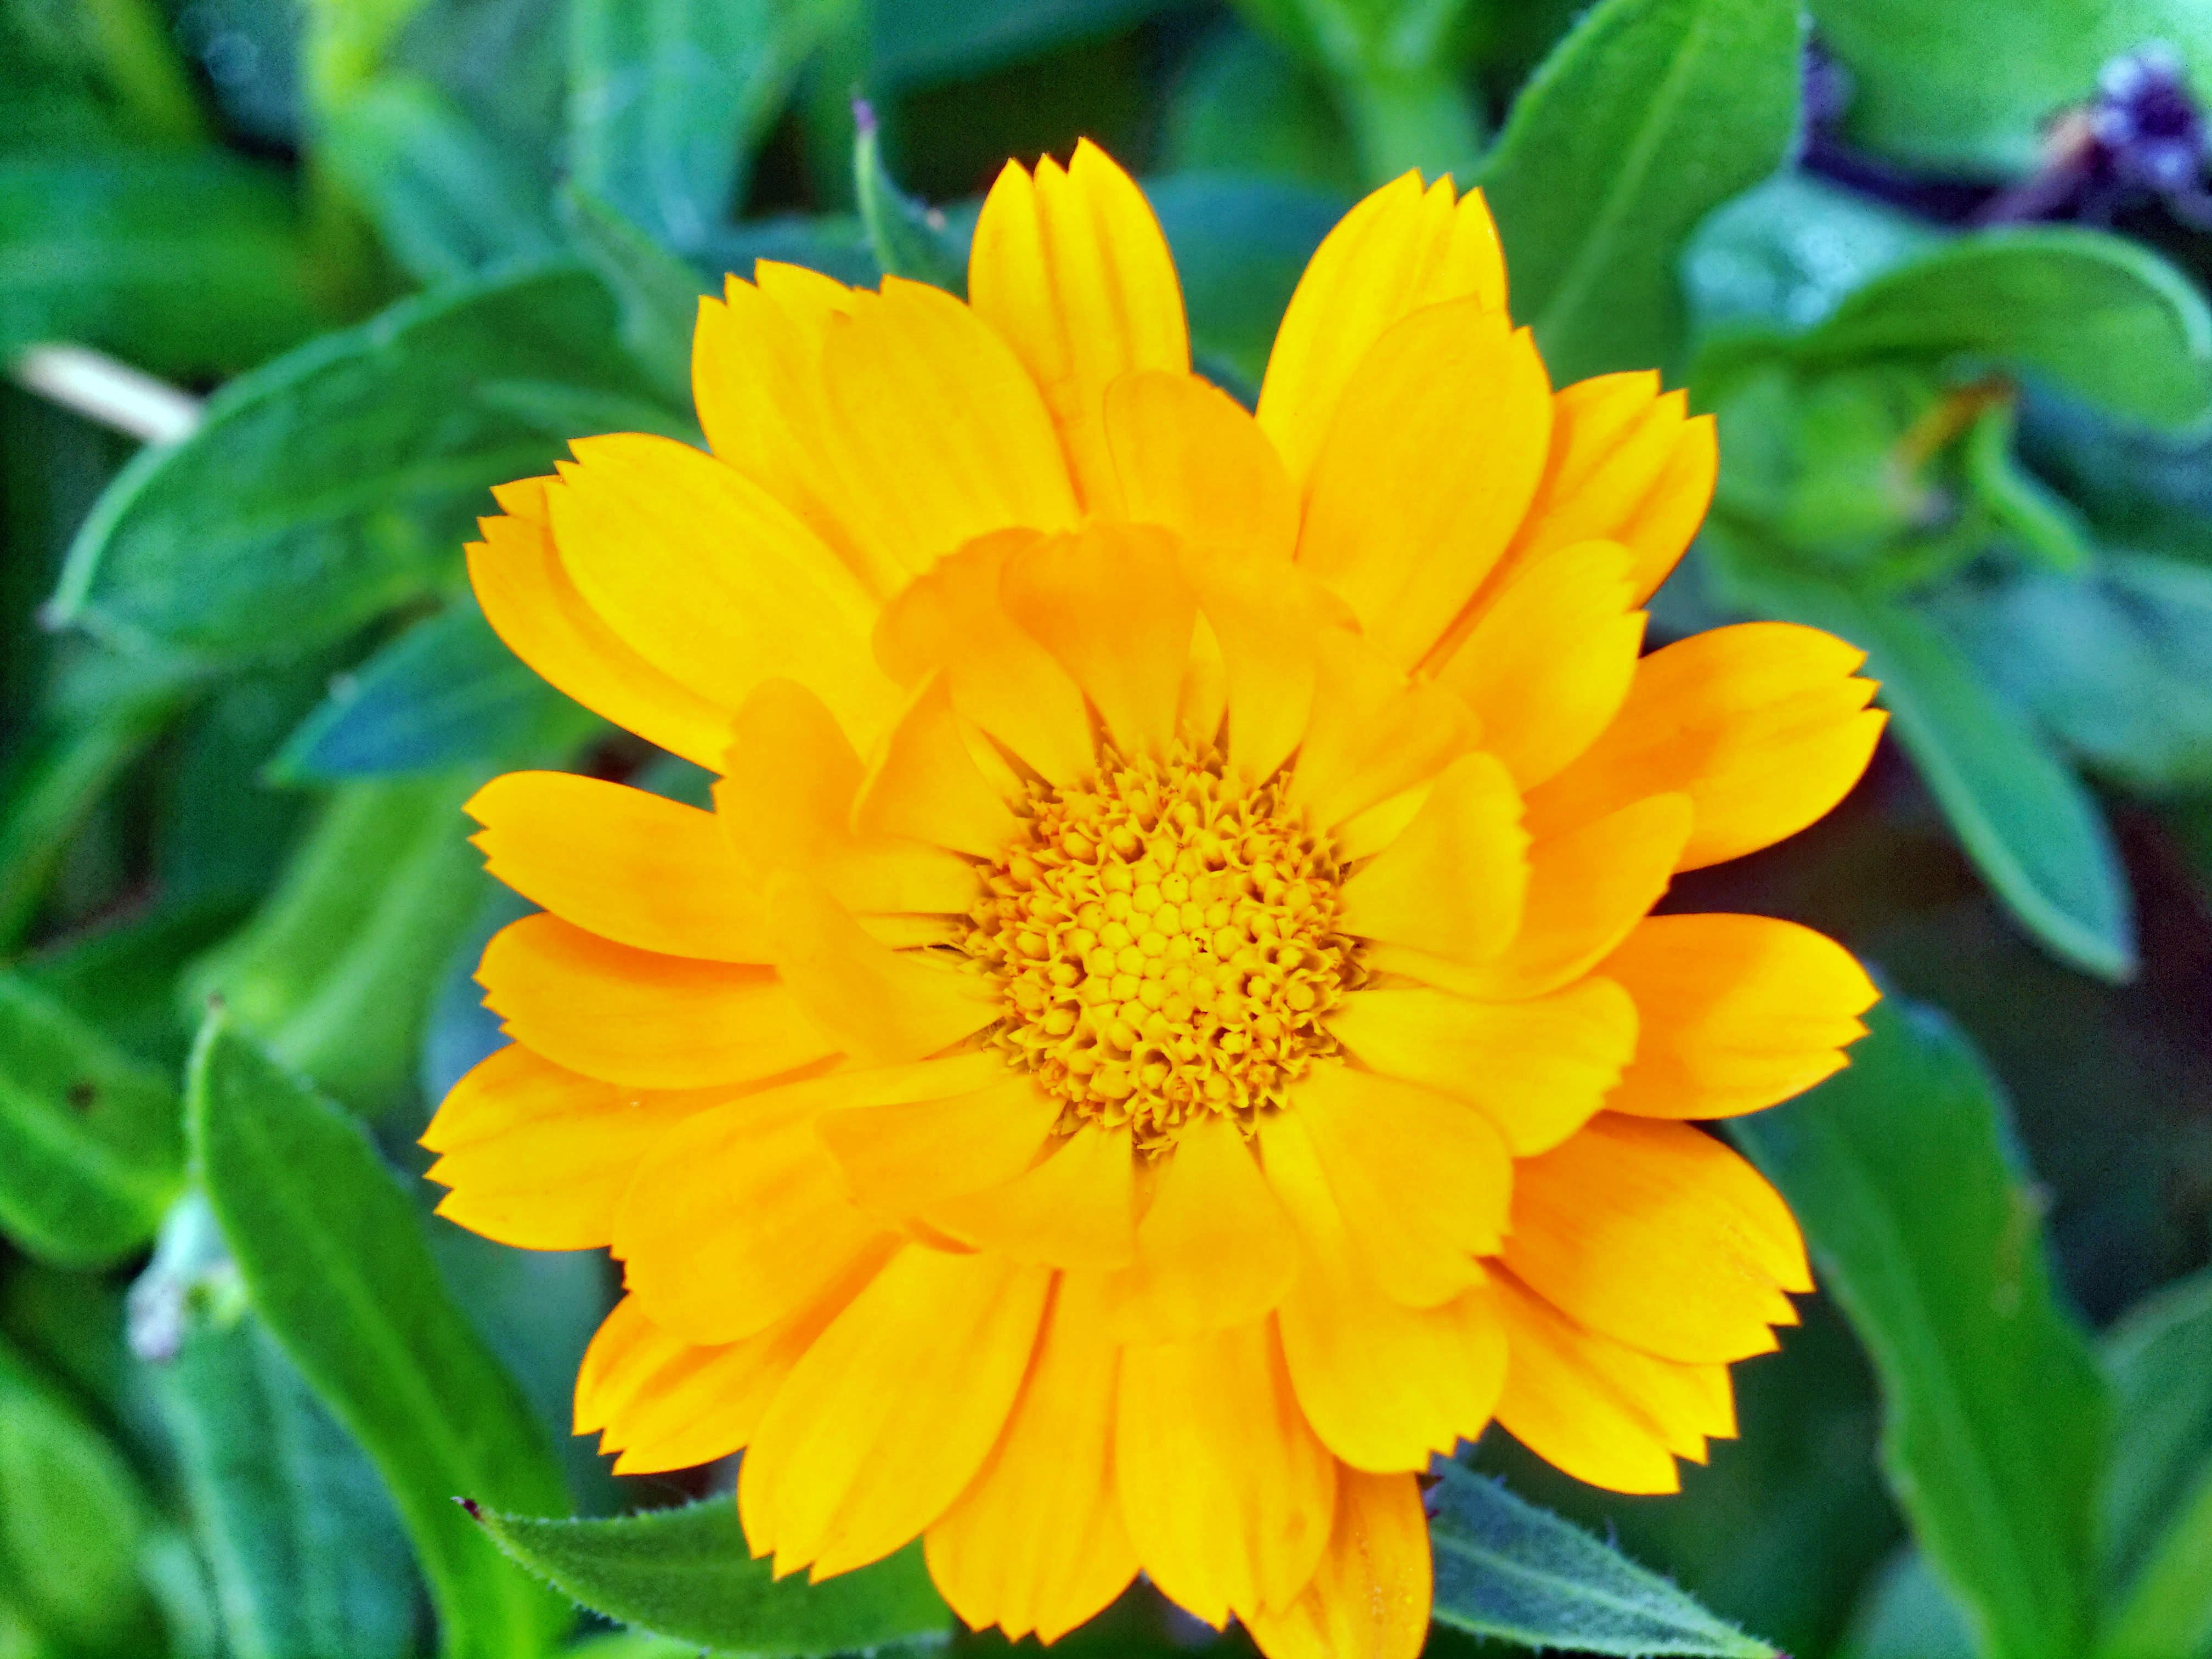 This should be Calendula.jpeg.  Is it missing?